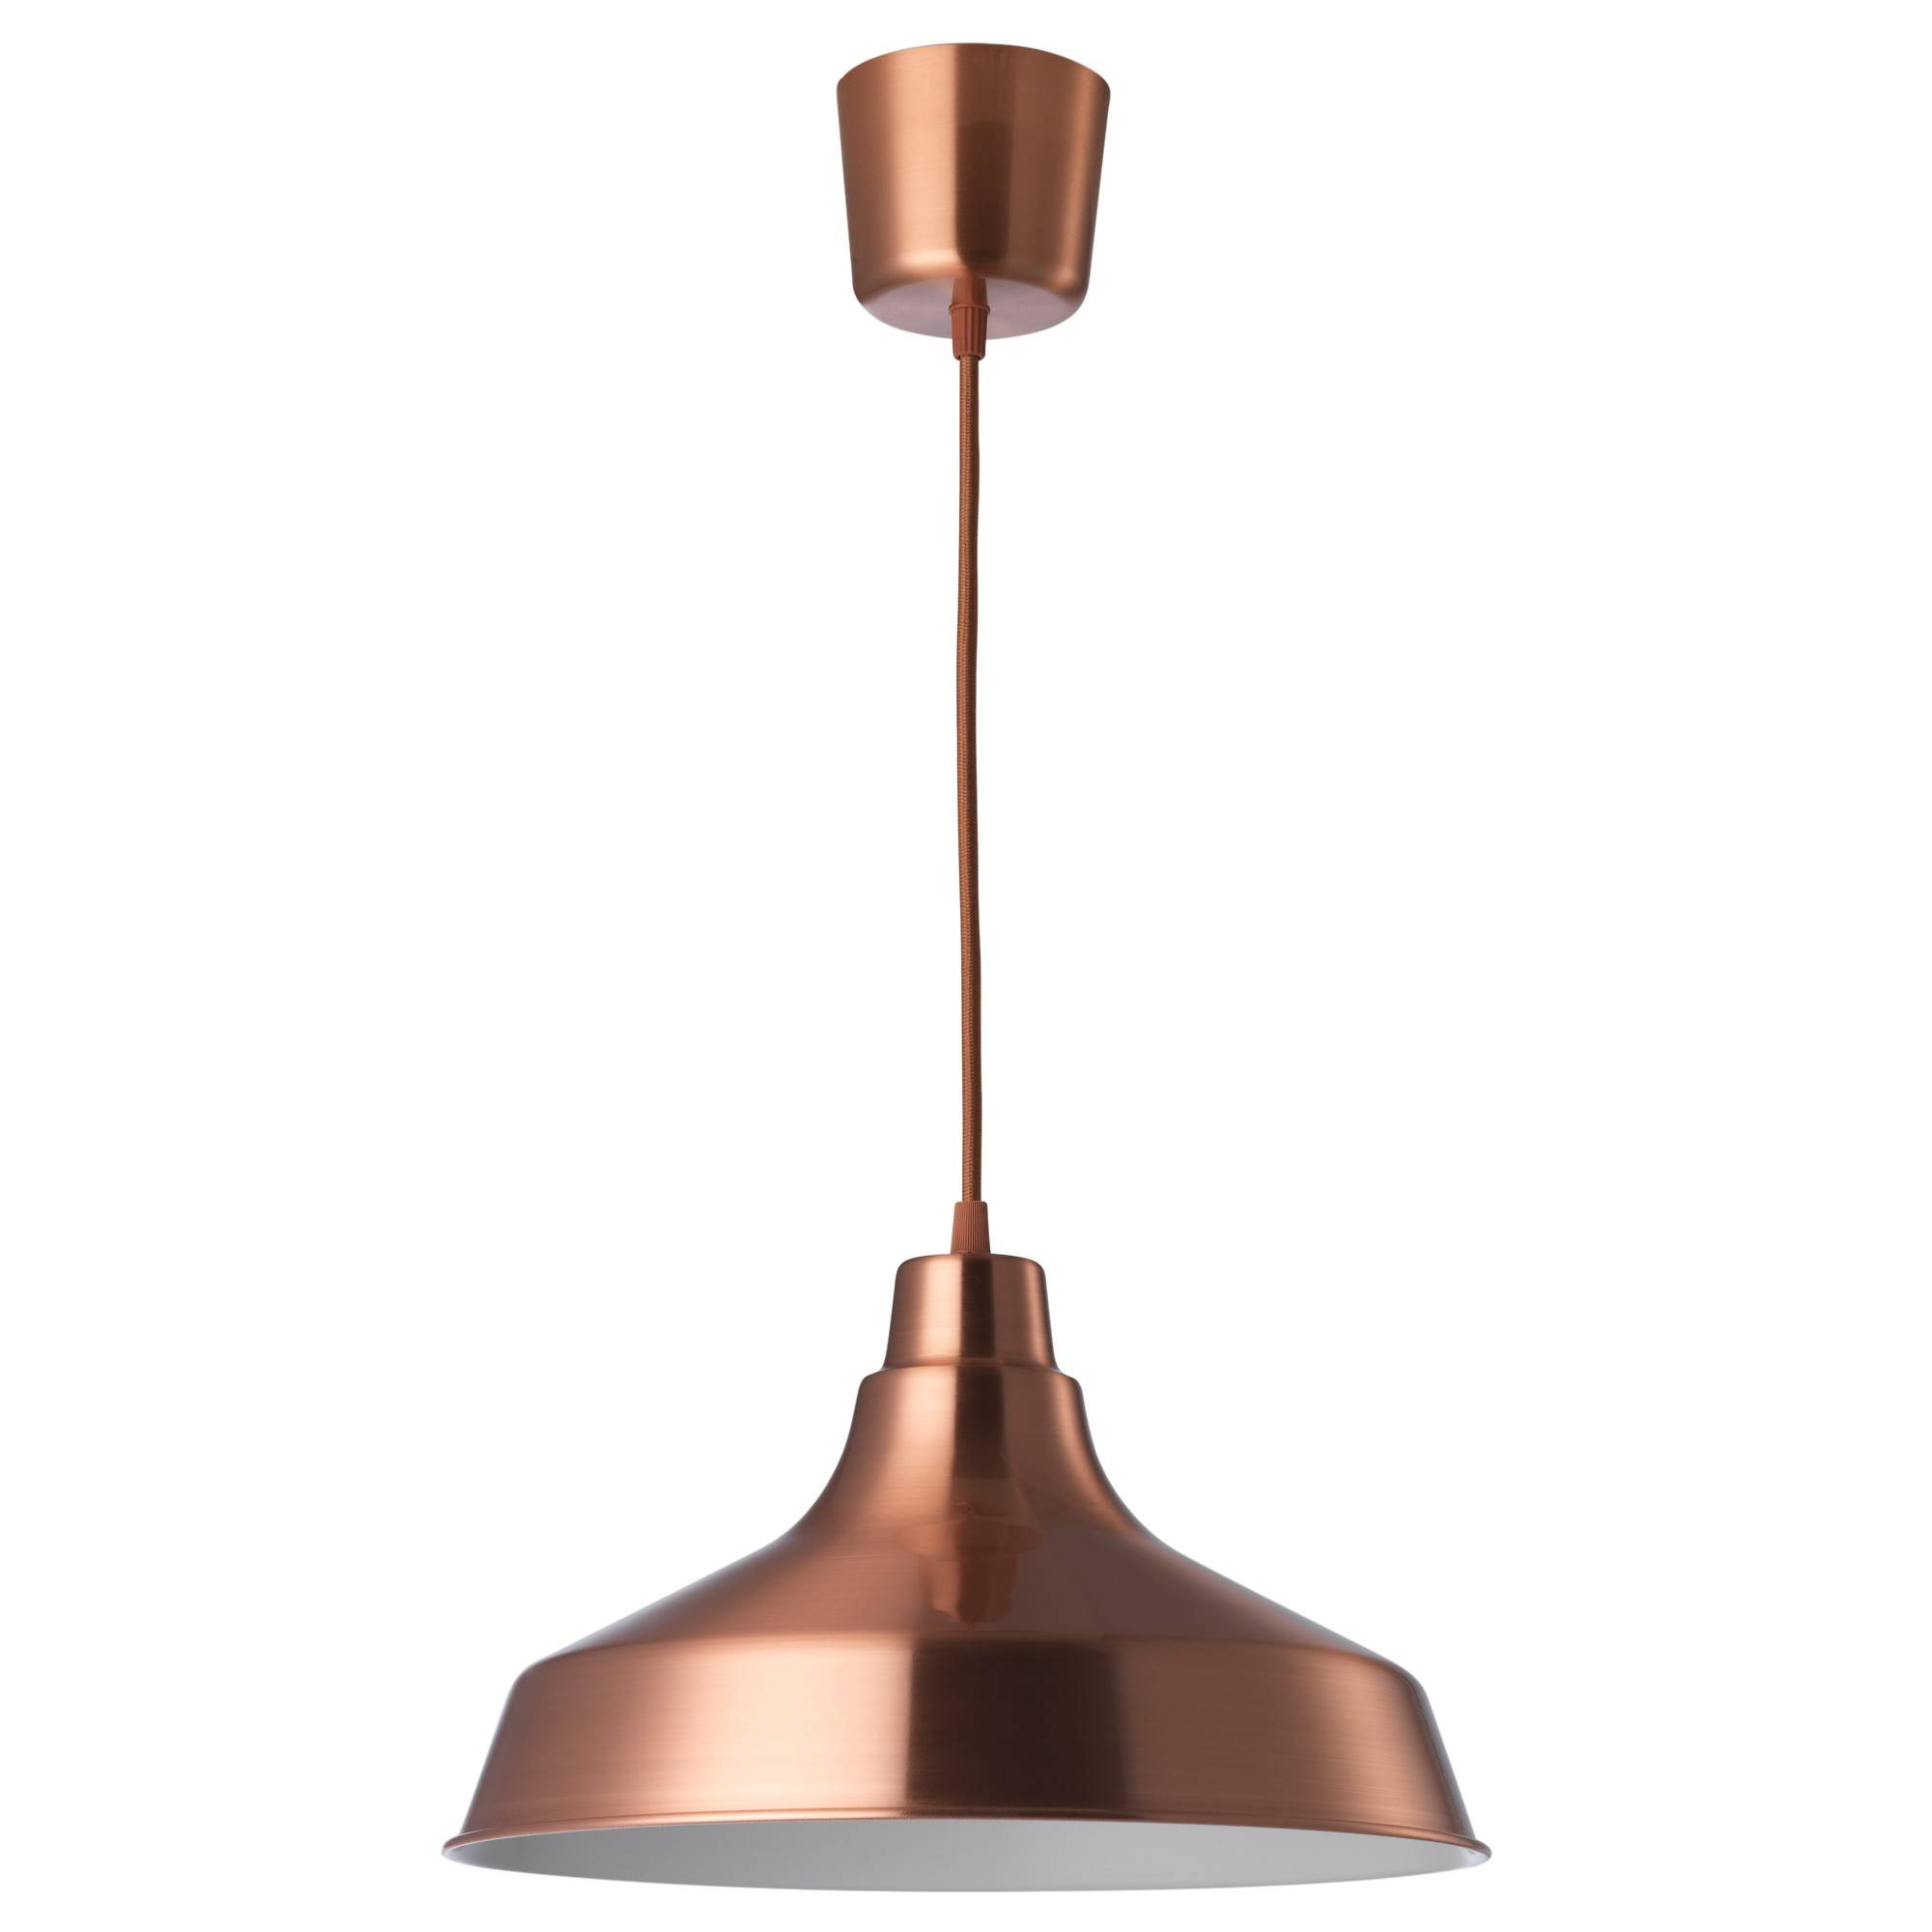 The best ikea pendant lighting vindkre pendant lamp copper colour 36 cm ikea in ikea pendant lighting image aloadofball Images